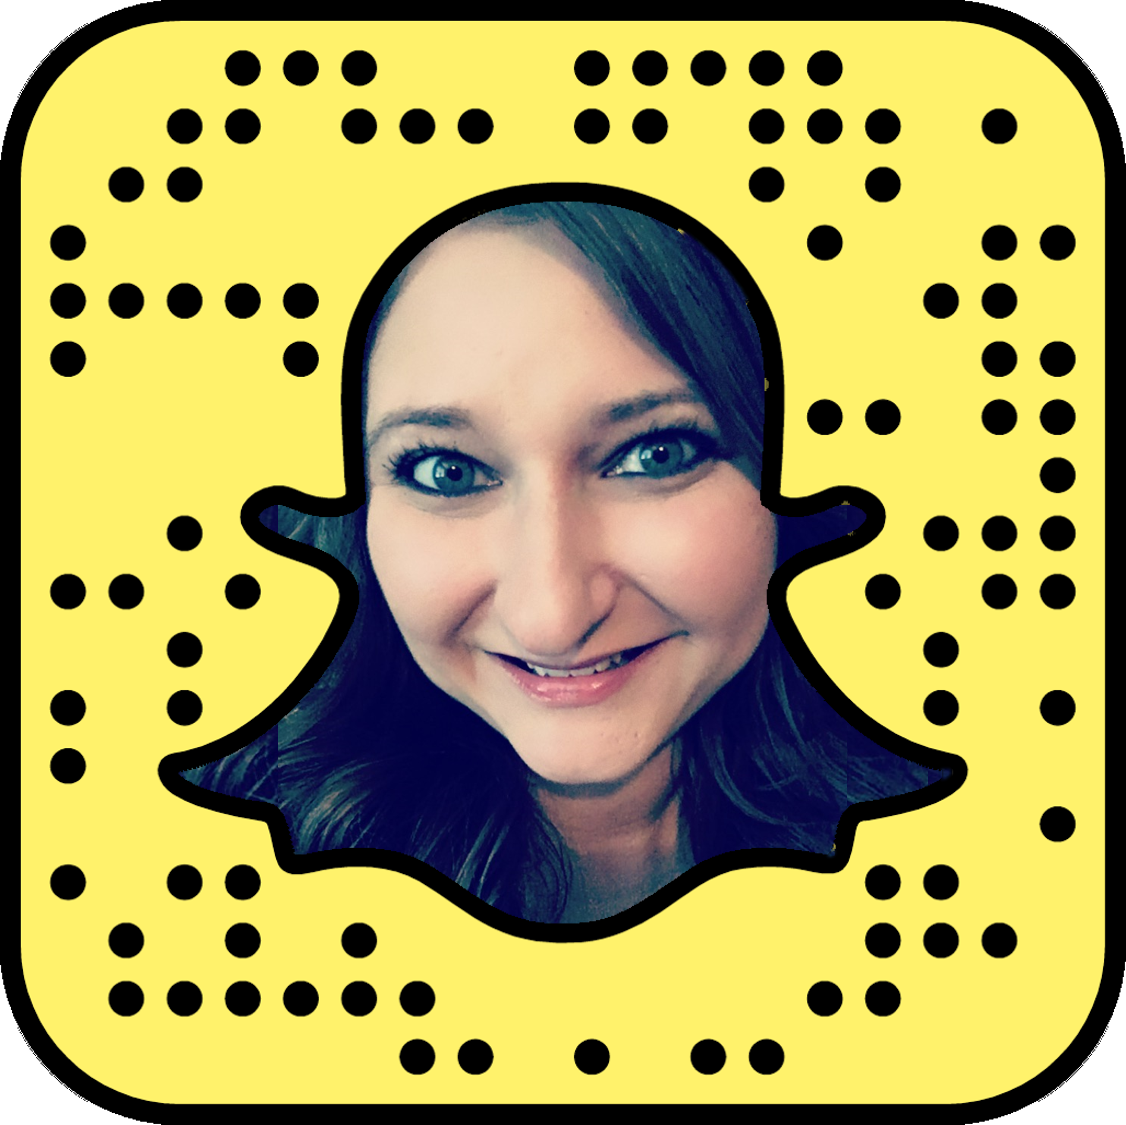 This is my blanket HELLO! I'm your #ChatSnap host Kristy from Houston. Watch my feed for the questions! :) https://t.co/LbiWQqpphX